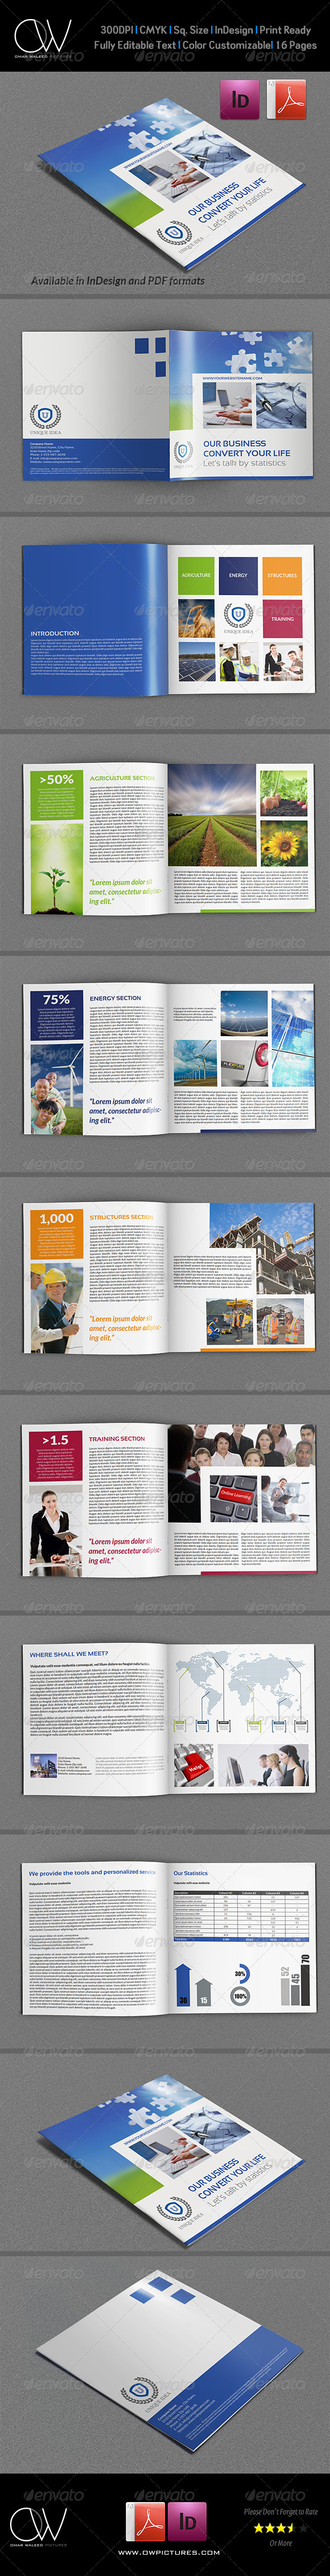 Company Brochure Template Vol.32 - 16 Pages - Corporate Brochures